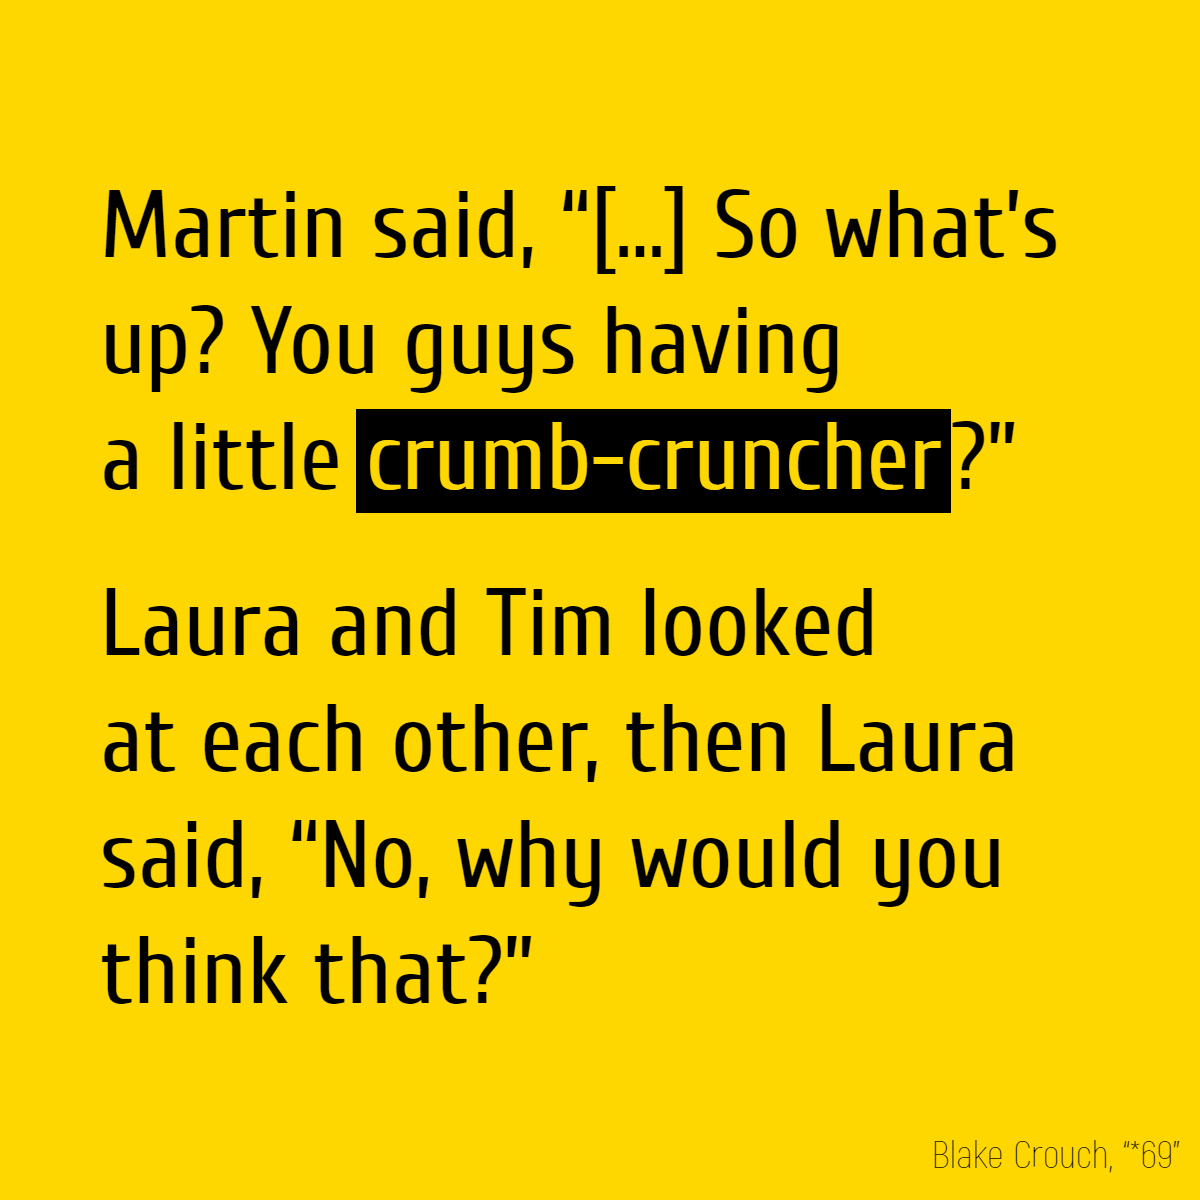 "Martin said, ""[...] So what's up? You guys having a little crumb-cruncher?"" Laura and Tim looked at each other, then Laura said, ""No, why would you think that?"""